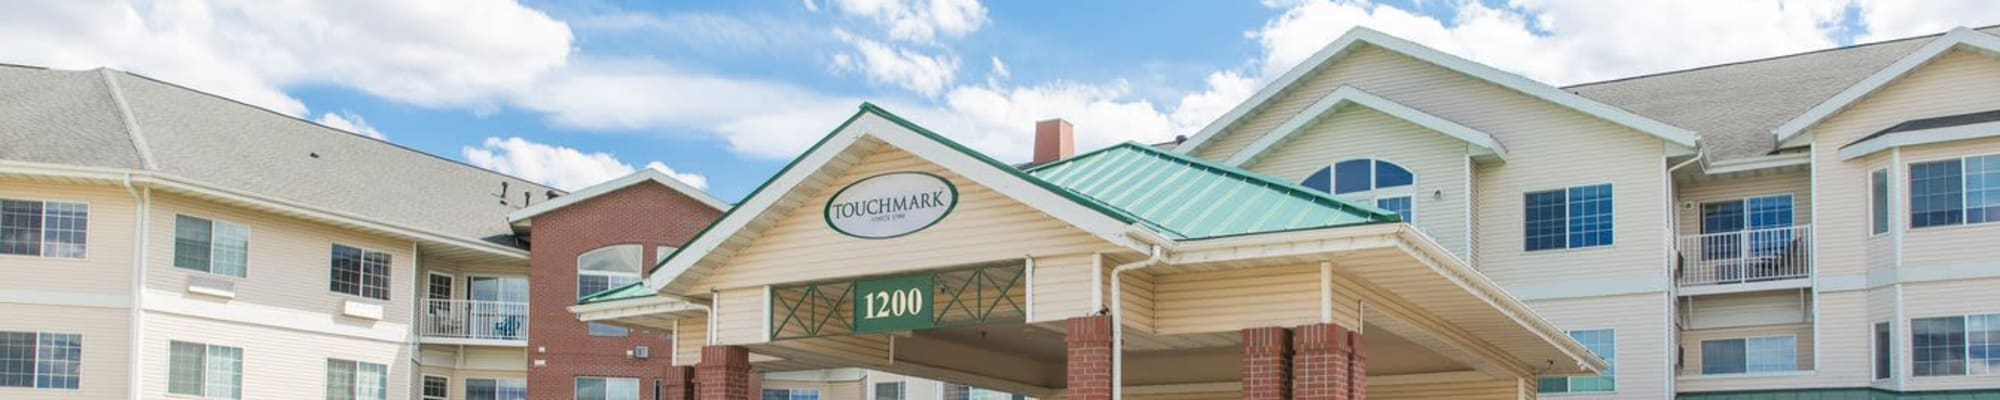 Good times at Touchmark at Harwood Groves in Fargo, North Dakota